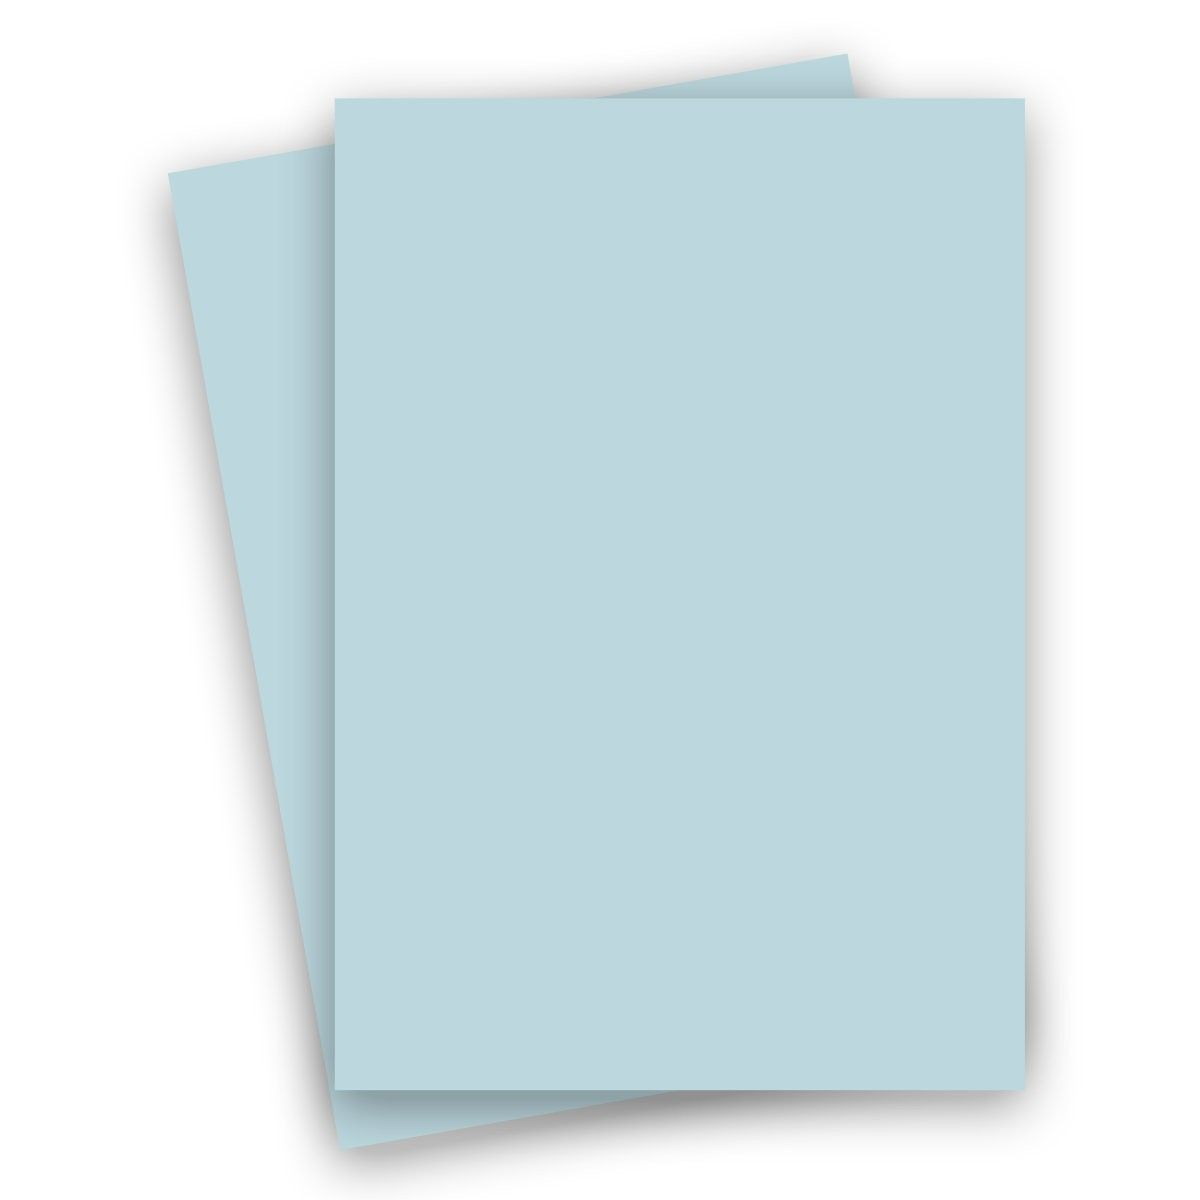 French Paper Poptone Sno Cone 8 5x14 65c 175gsm Lightweight Card Stock Paper 250 Pk In 2021 French Paper Sno Cones Paper